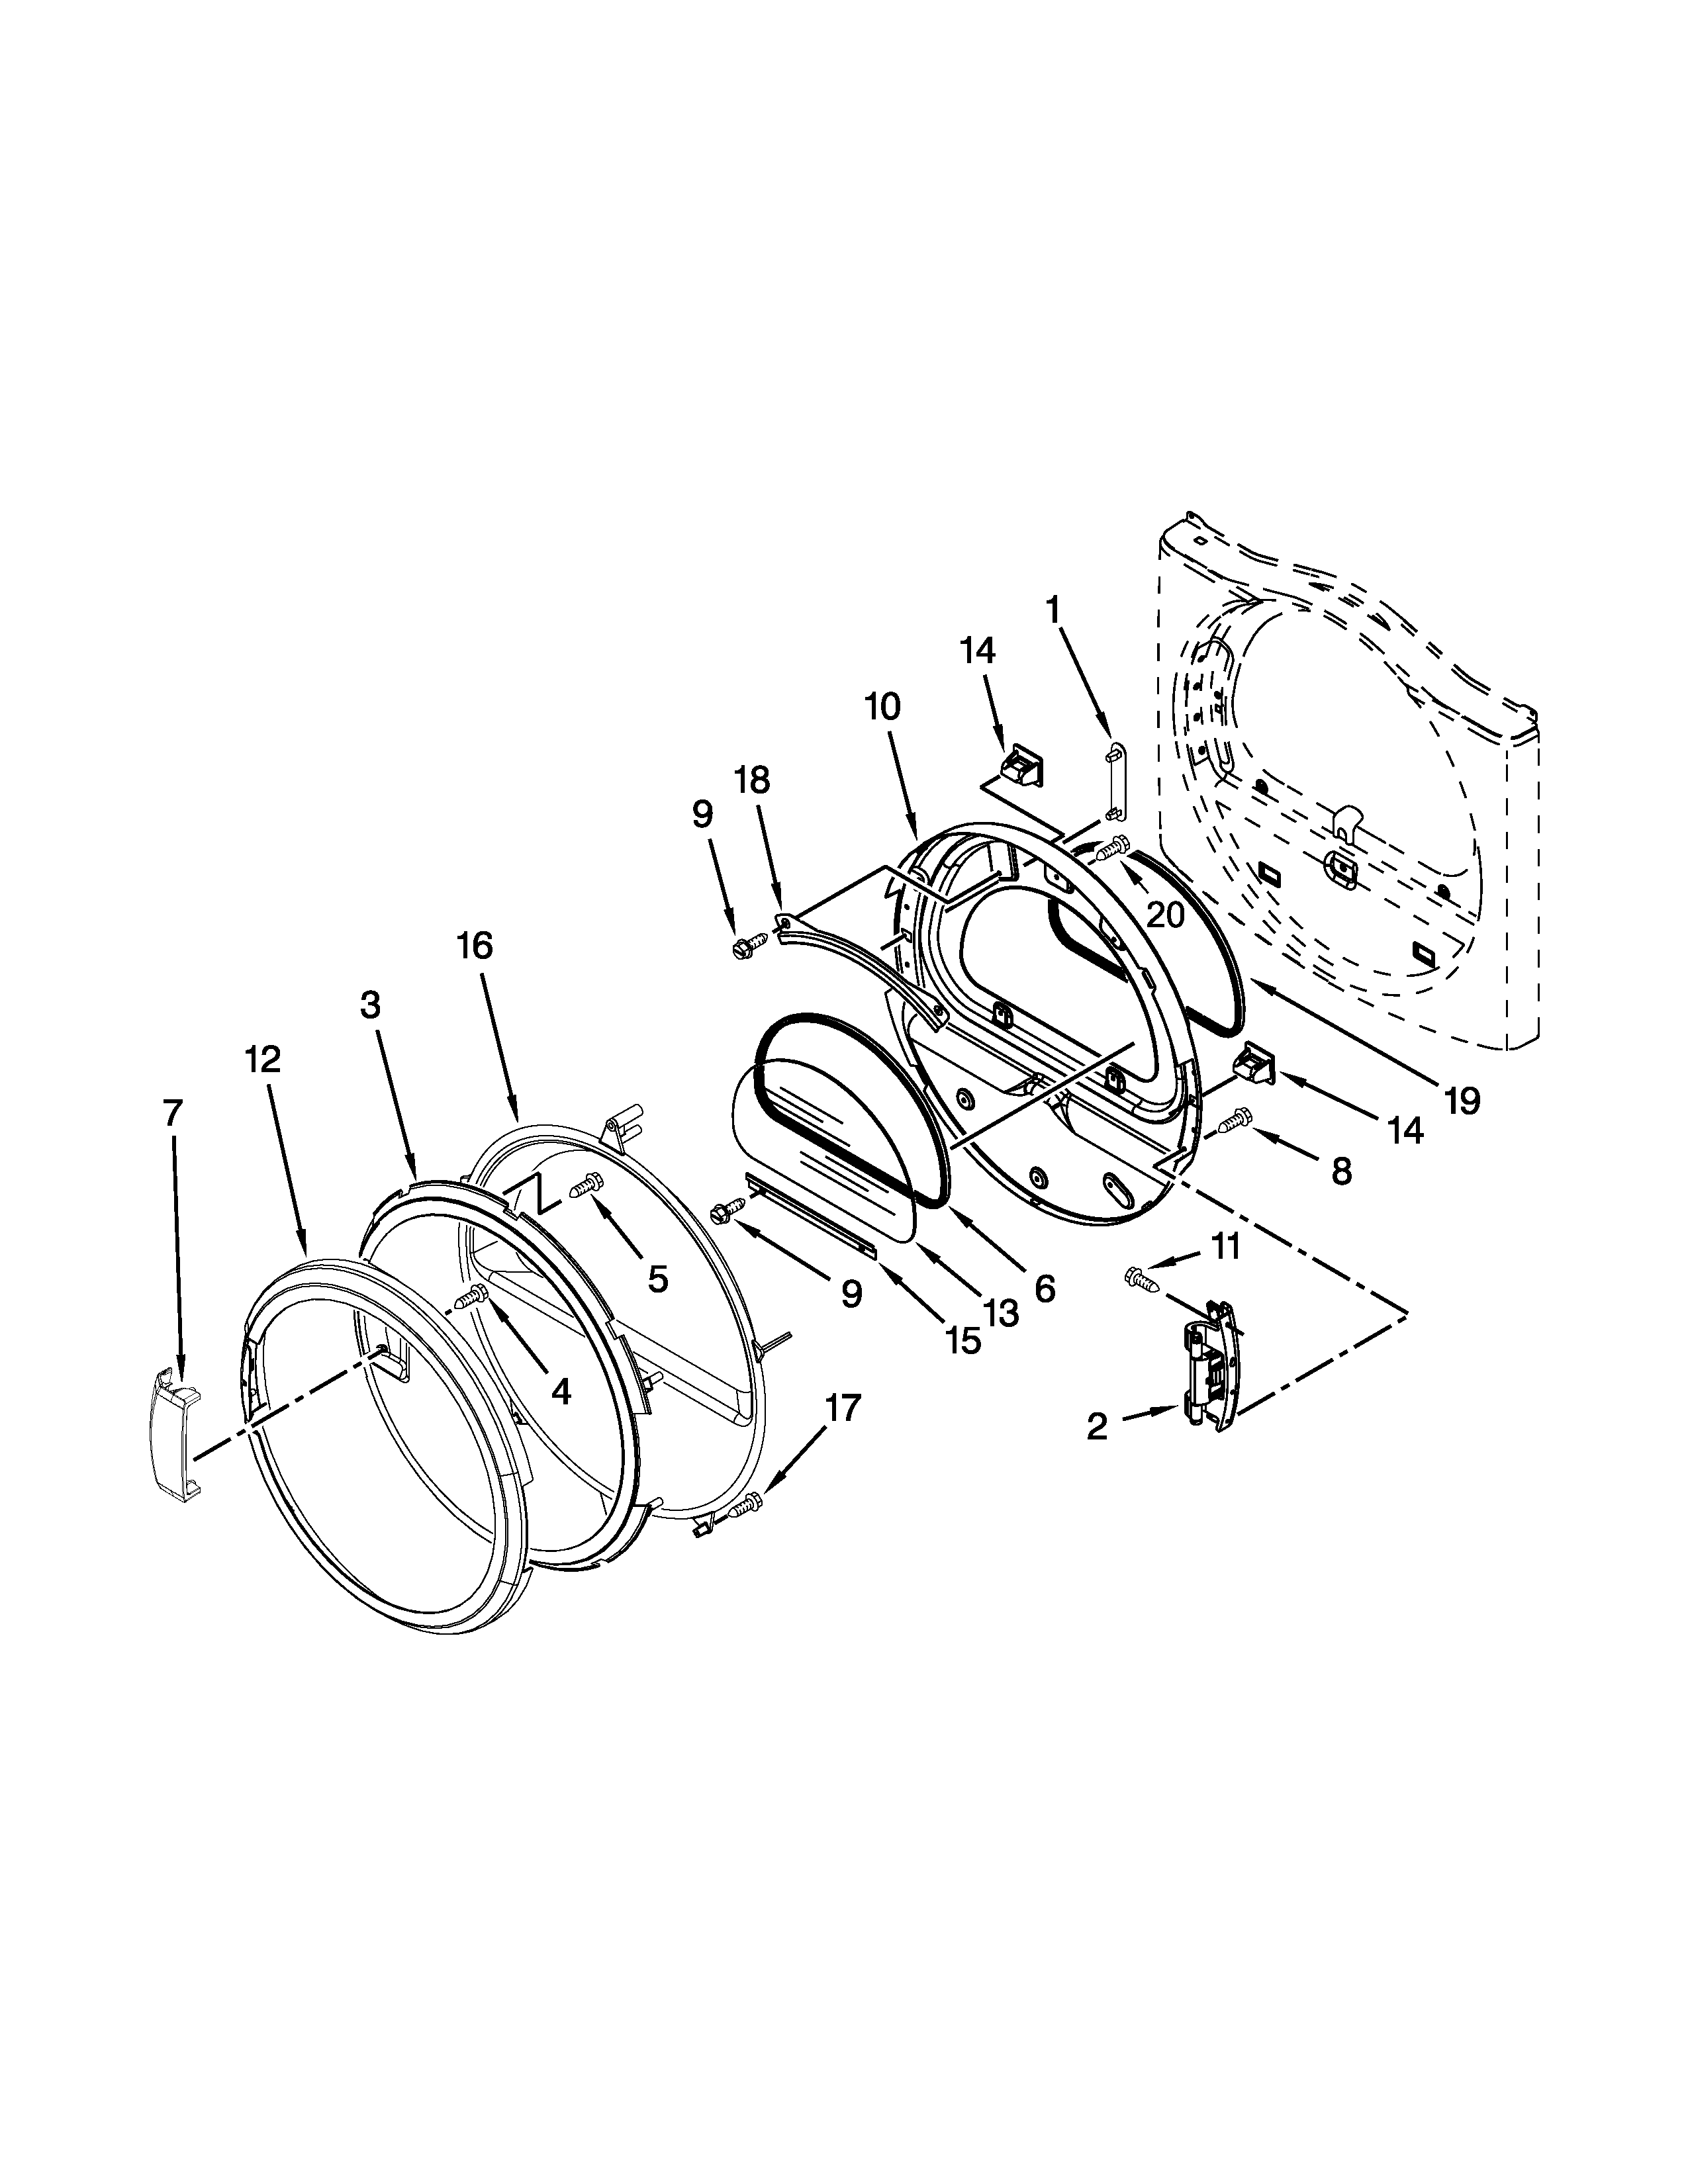 Cool mins isb engine diagram pictures best image wire kinkajo us